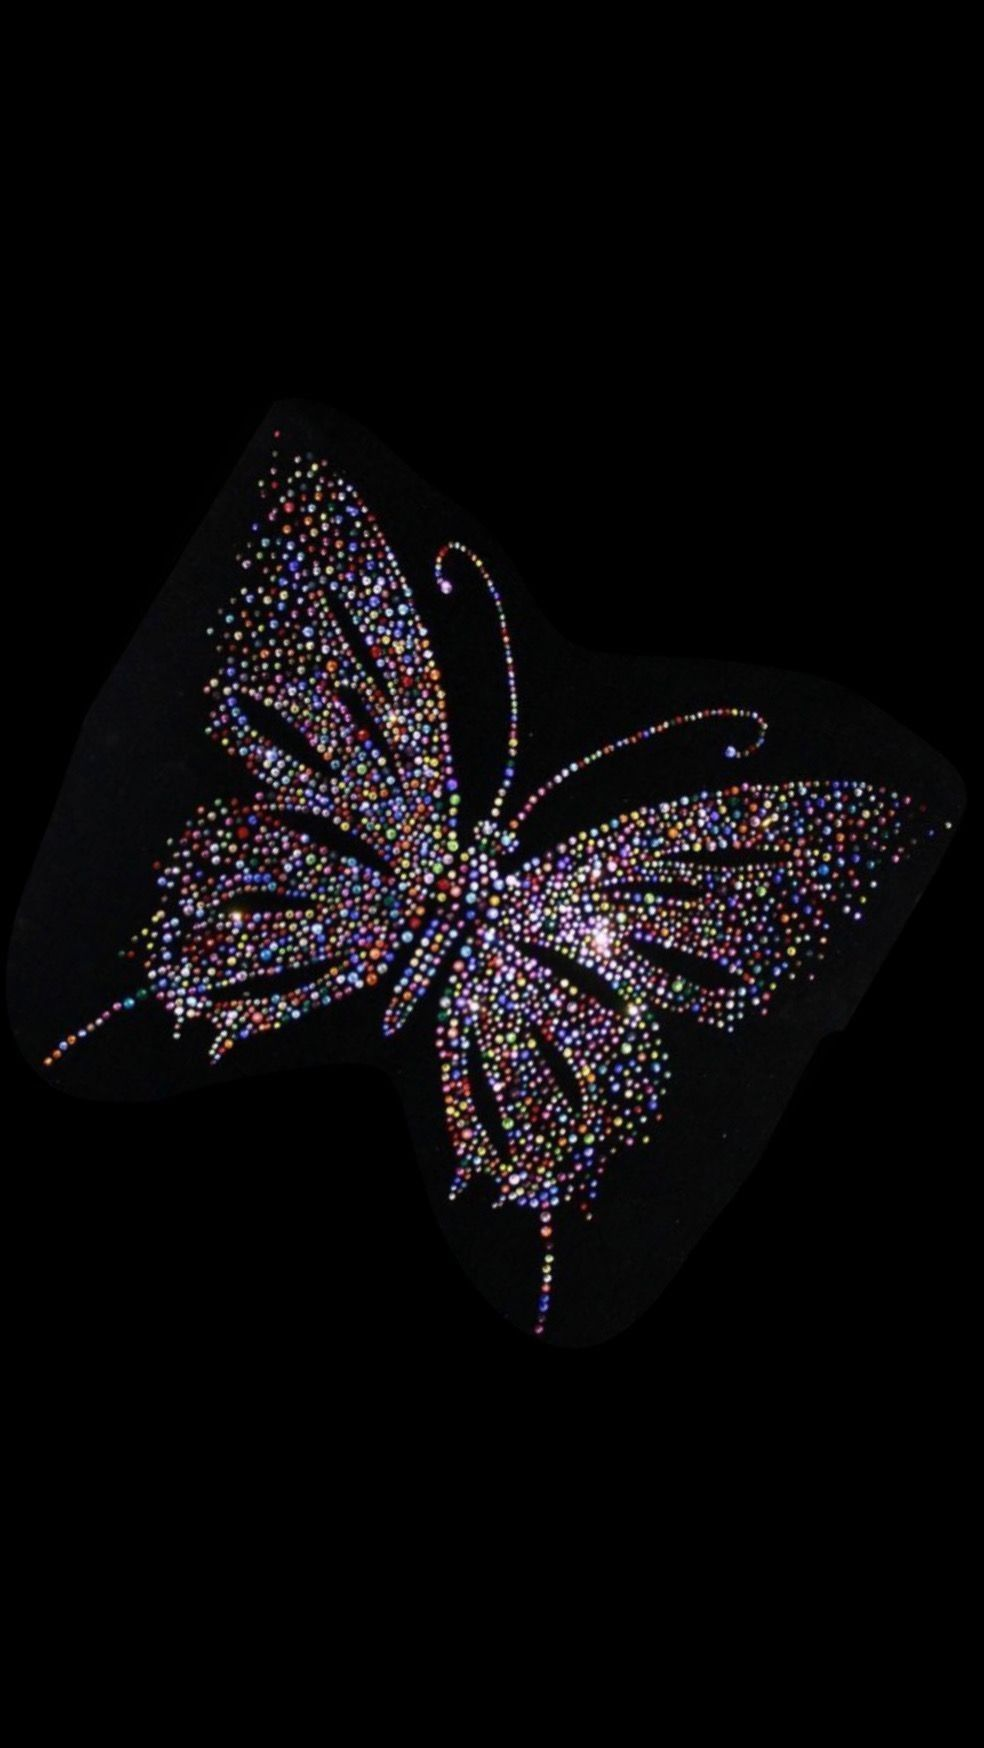 Pin By Reem Saher On Mamatha Butterfly Wallpaper Glitter Wallpaper Beautiful Nature Wallpaper